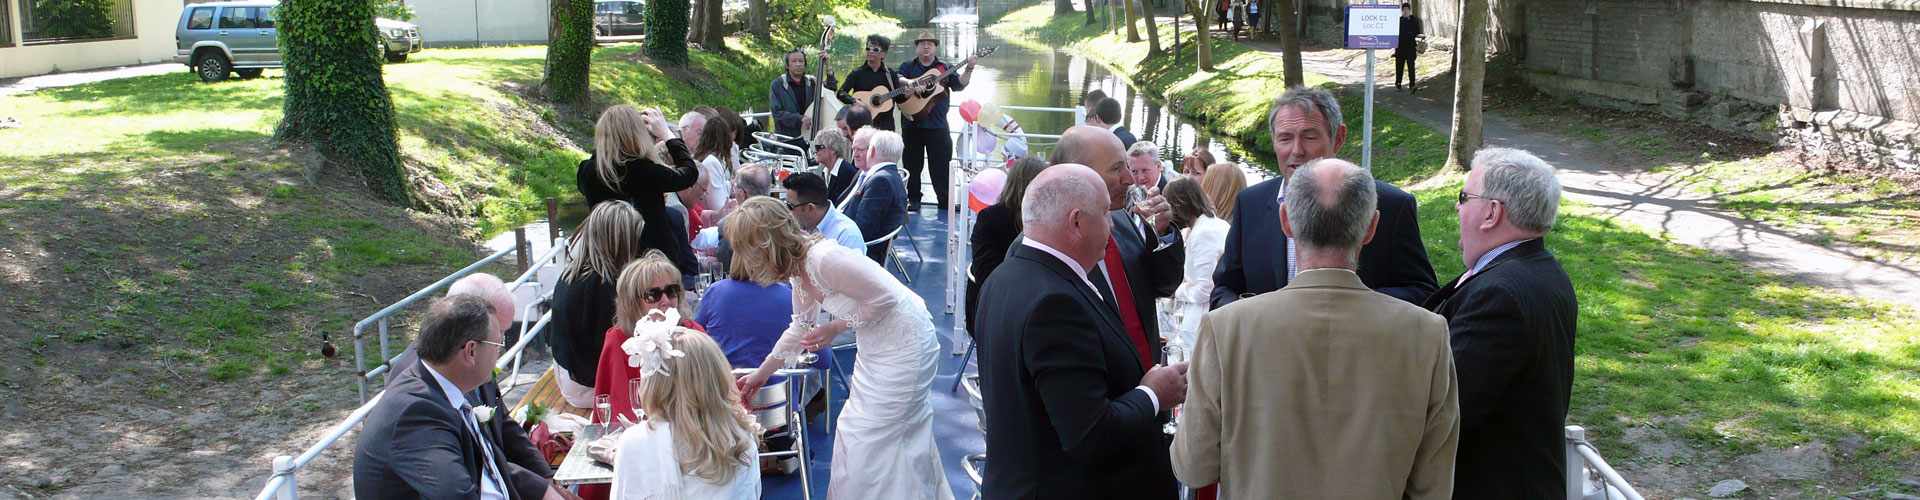 Wedding on canal boat